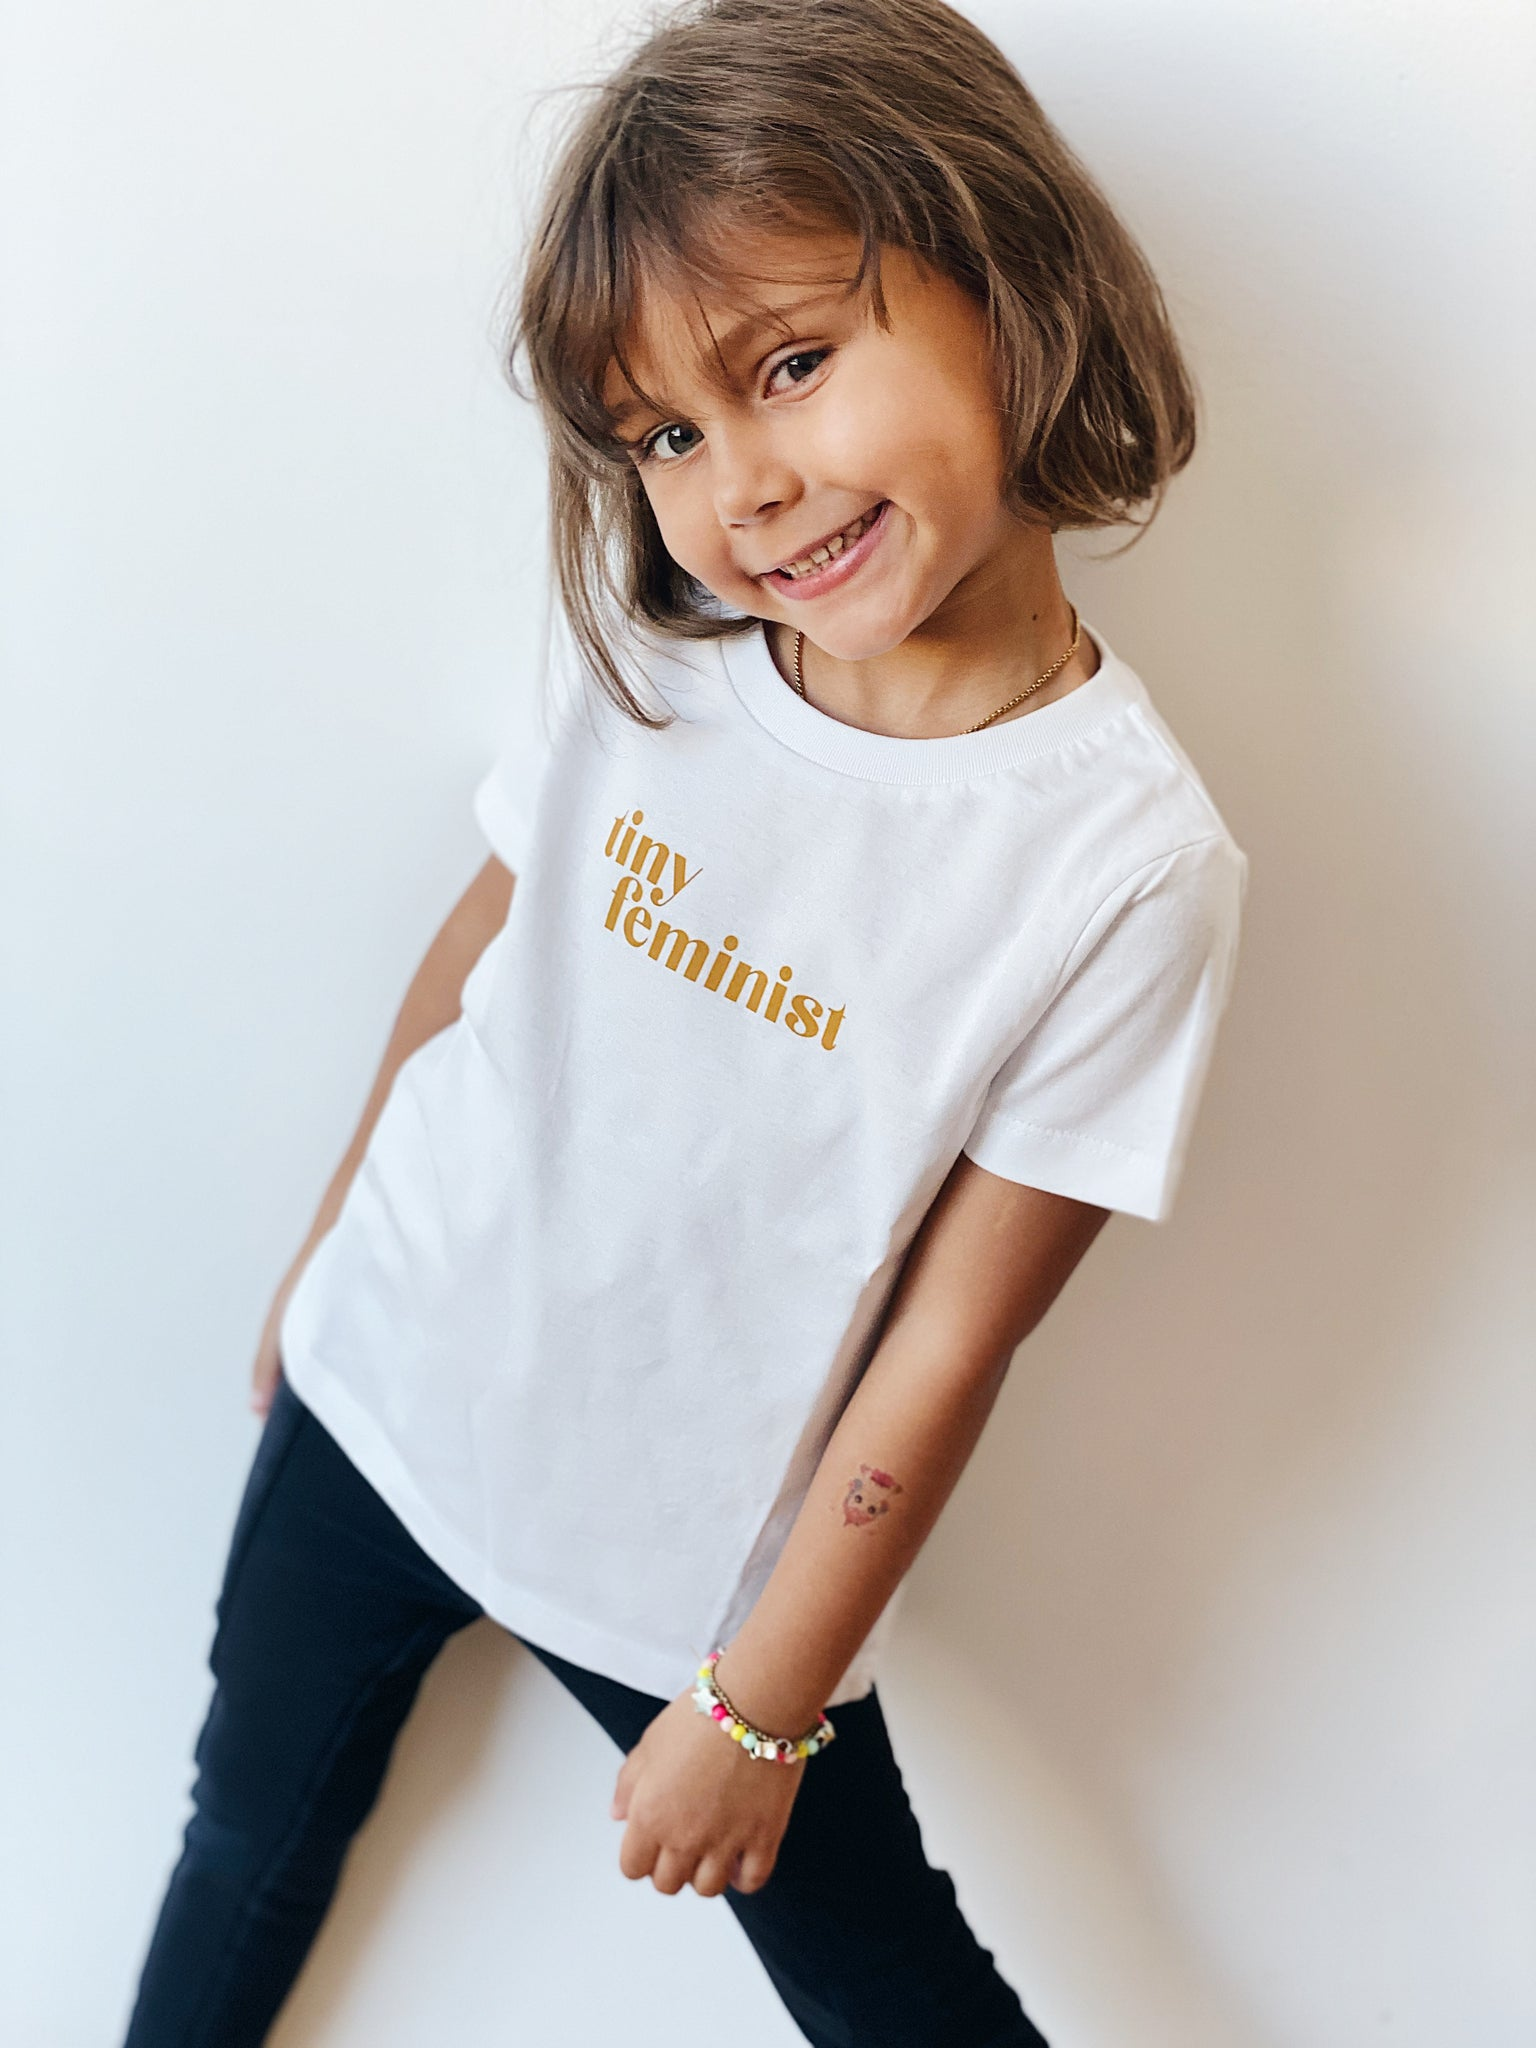 Retro Tiny Feminist T-shirt